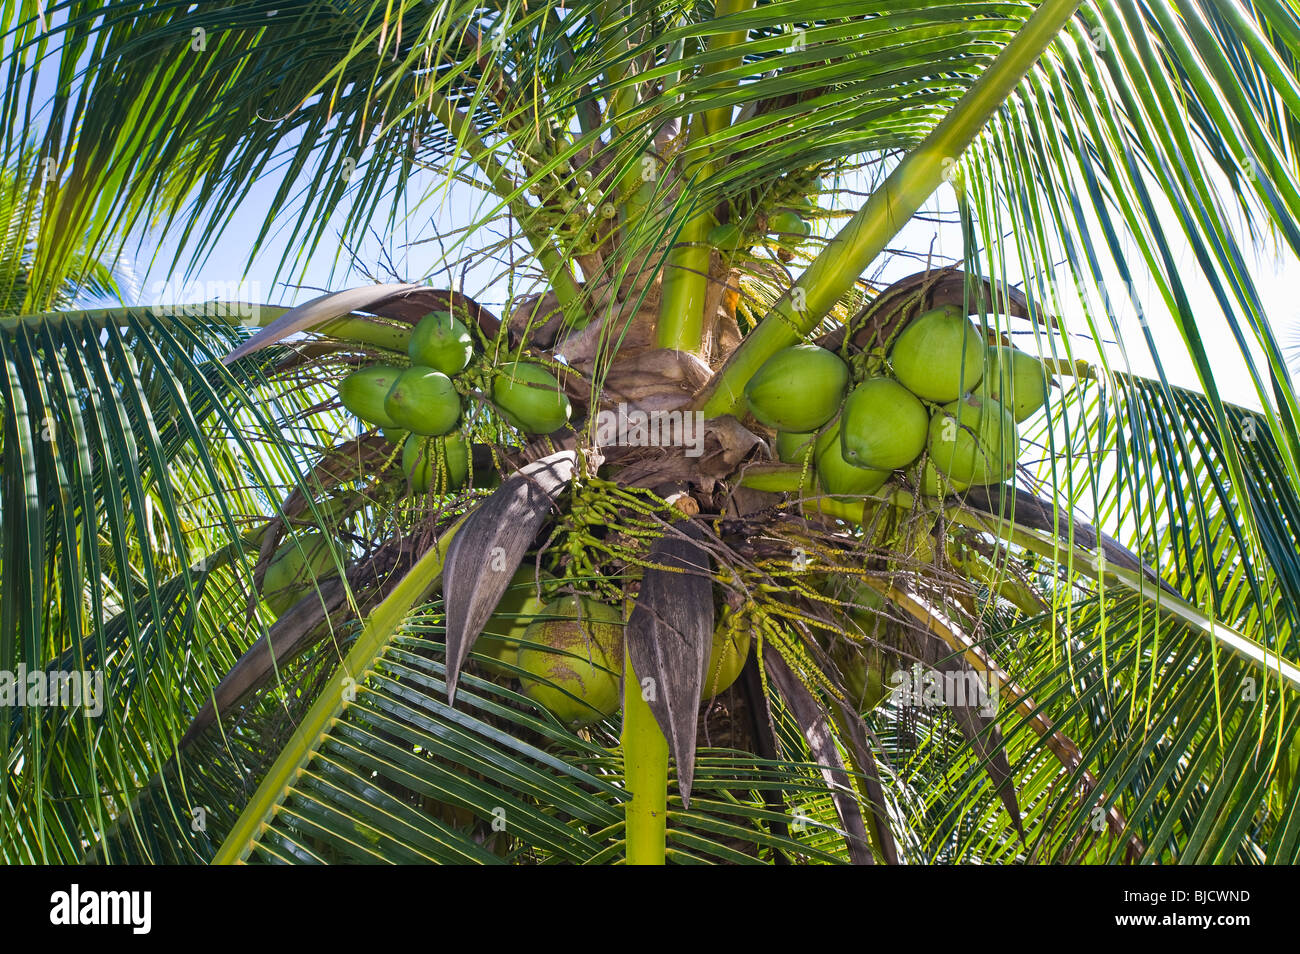 palm coconut coco coconutpalm nut  ripe fruit tree tropical plant fruit food high hight highness reap reaping harvest - Stock Image